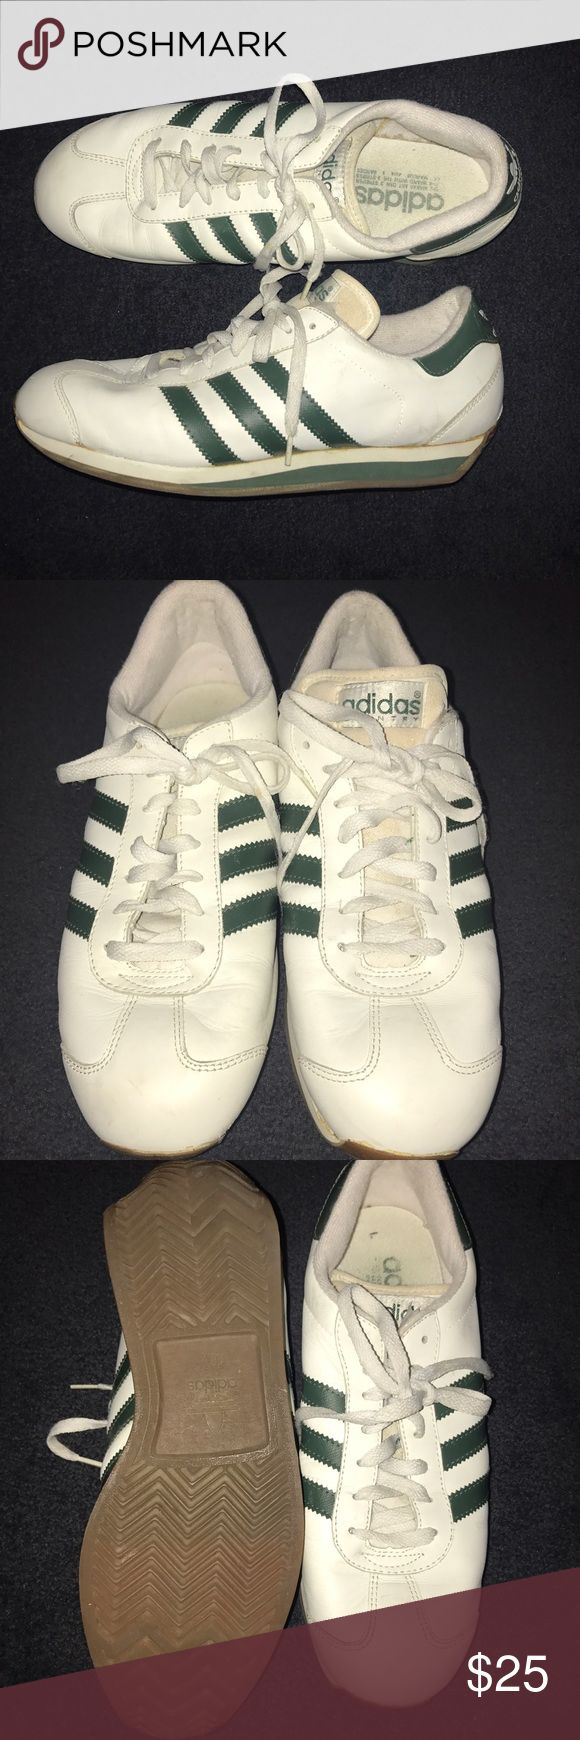 Vintage adidas country shoes Vintage adidas shoes size 11 in men and 12 1/2 in women's Adidas Shoes Sneakers